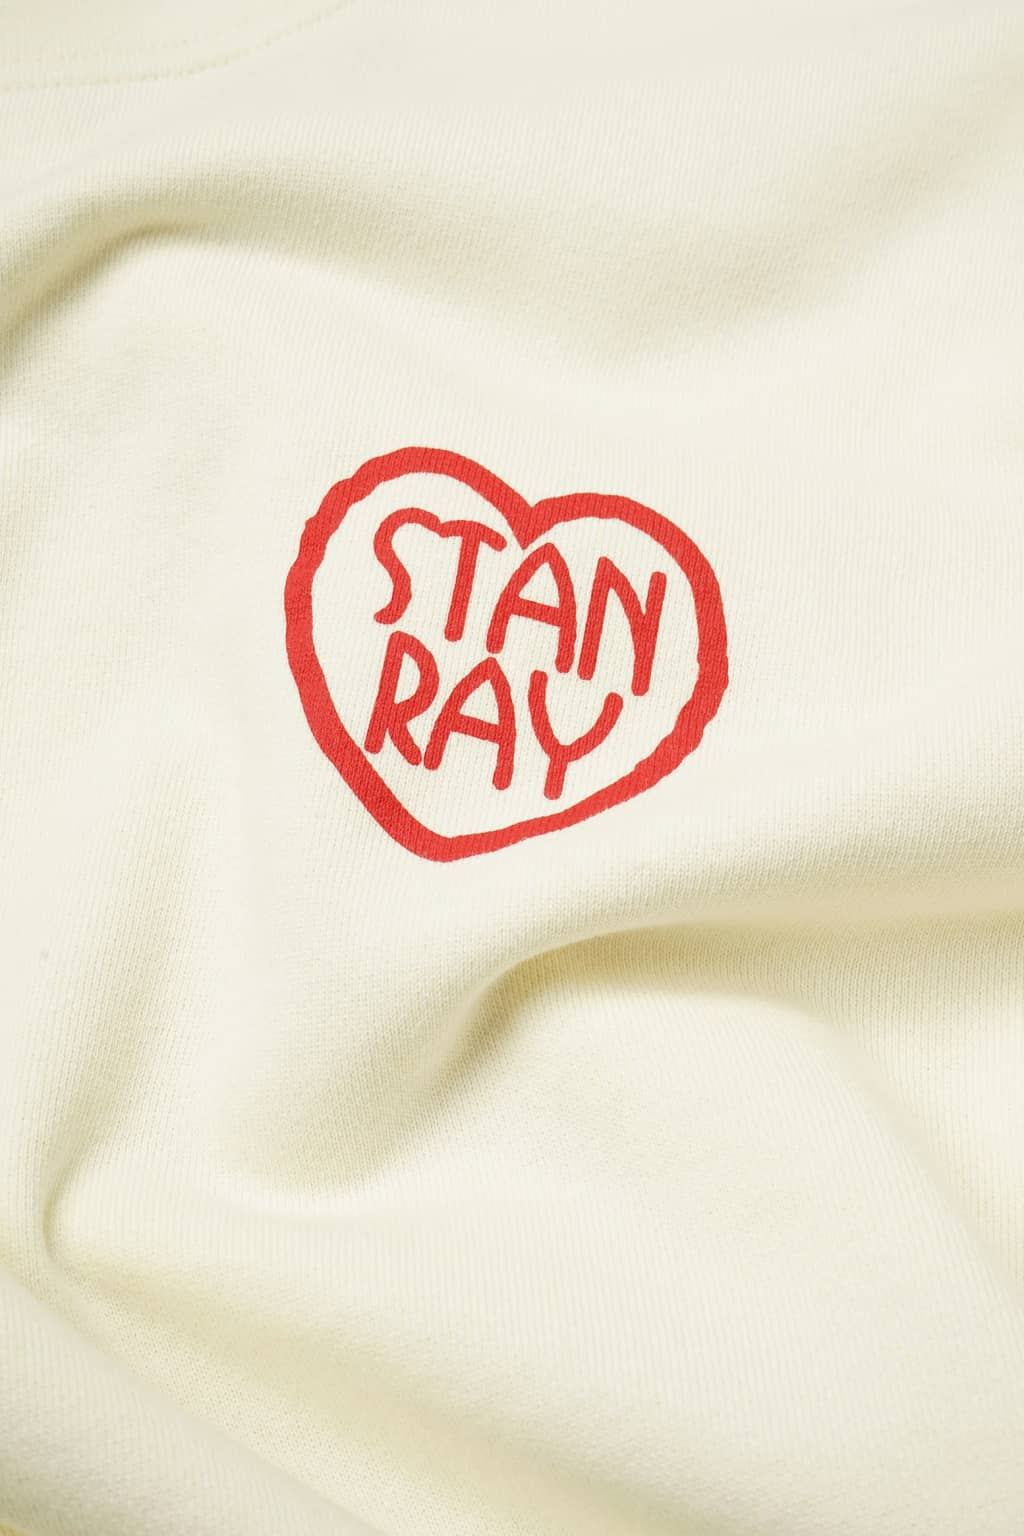 New Sweats from Stan Ray